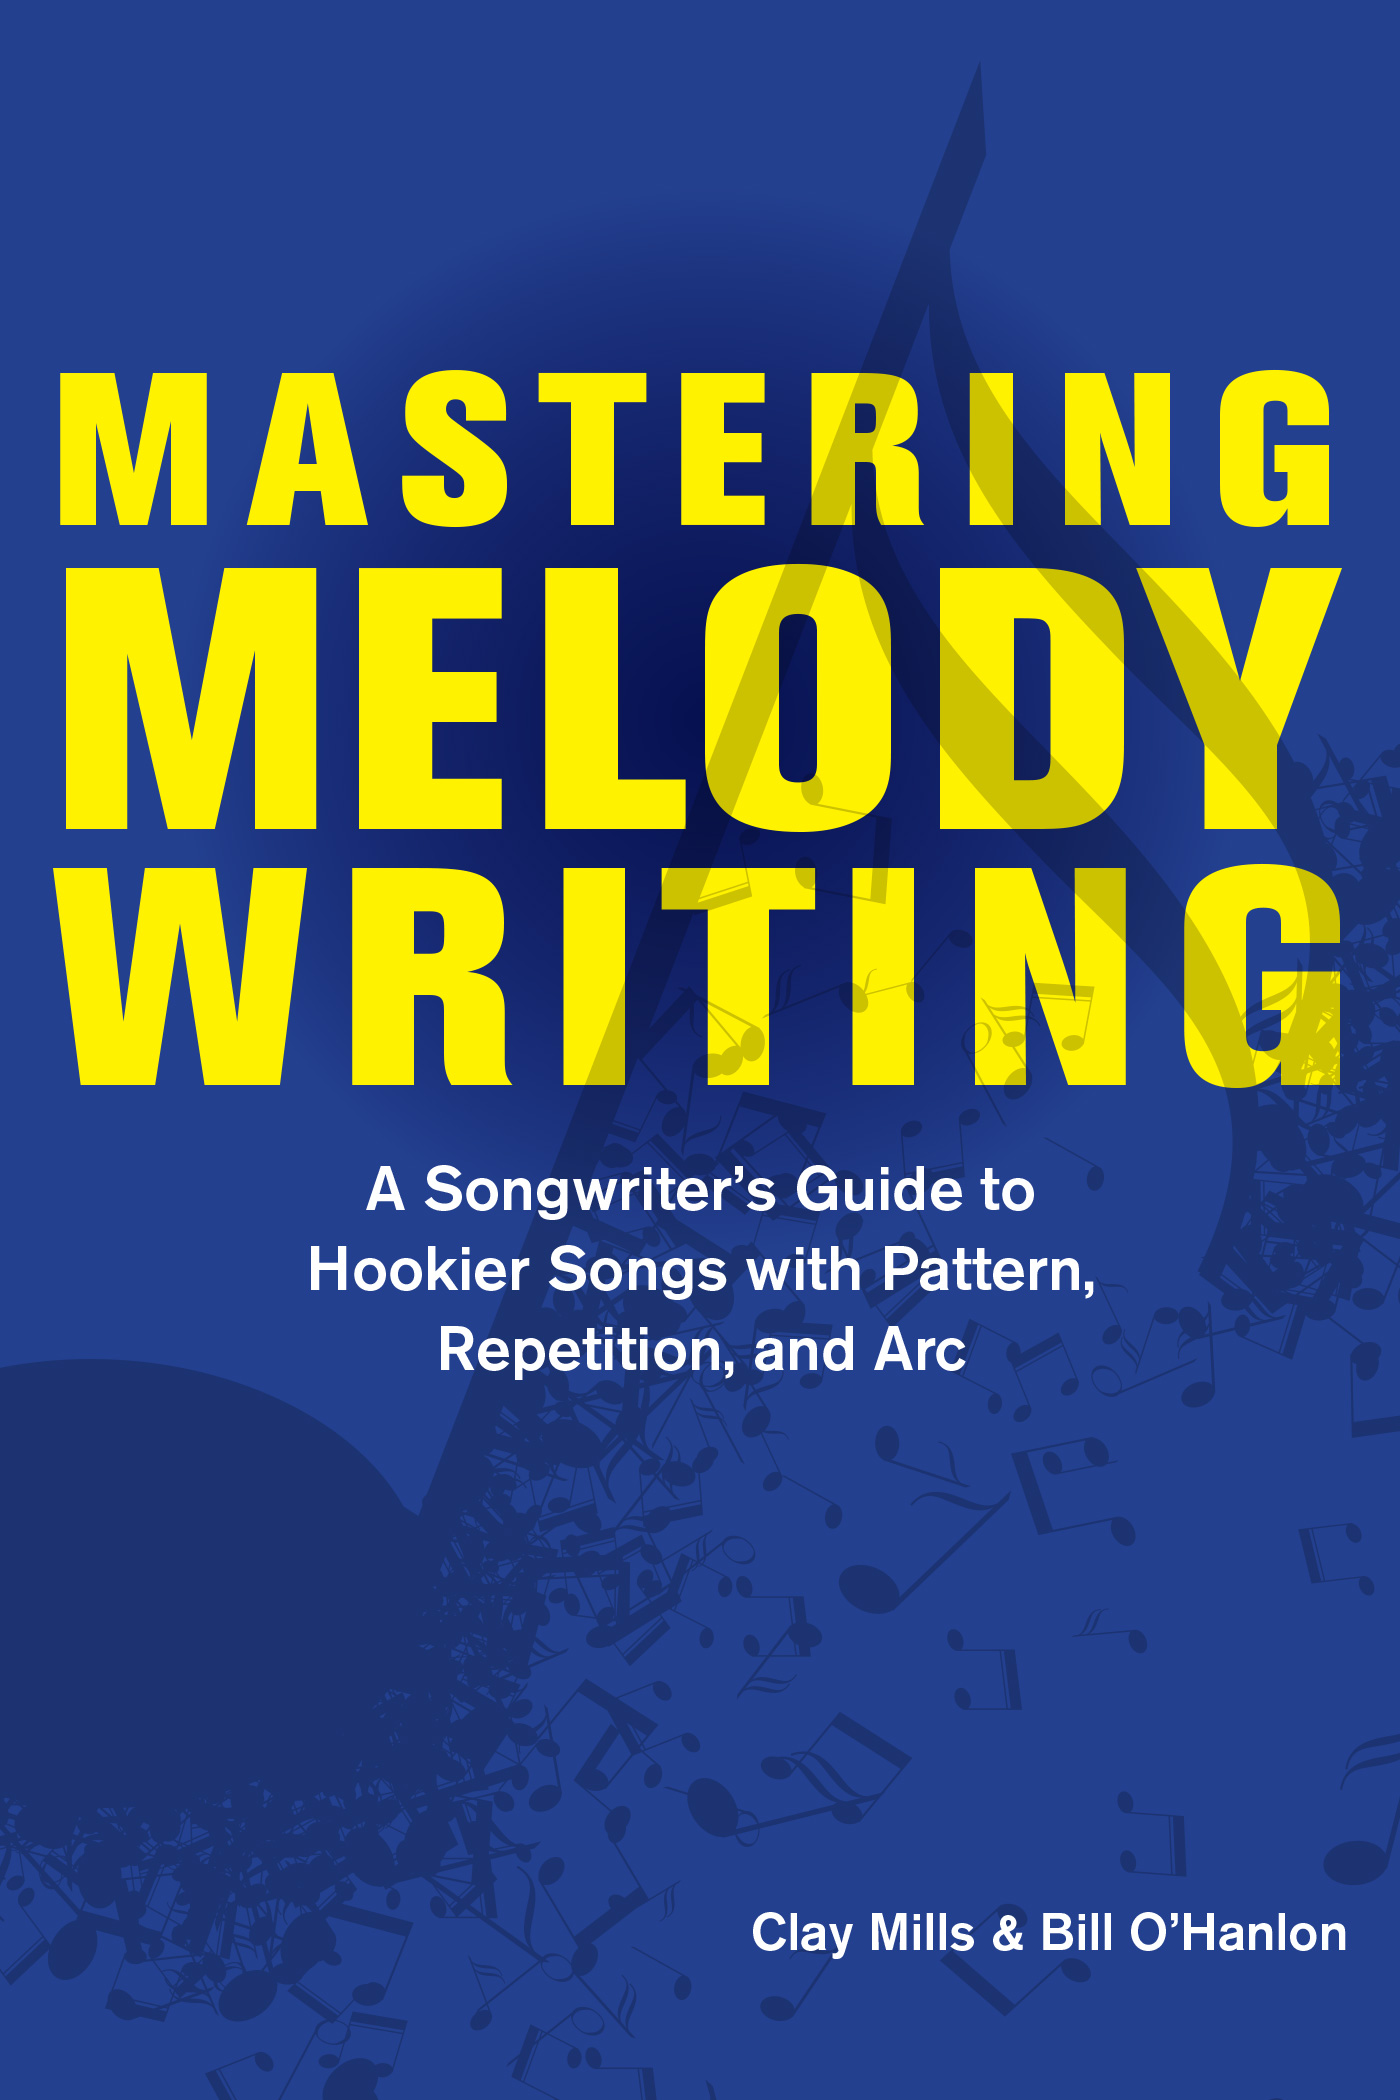 Mastering Melody Writing by Clay Mills